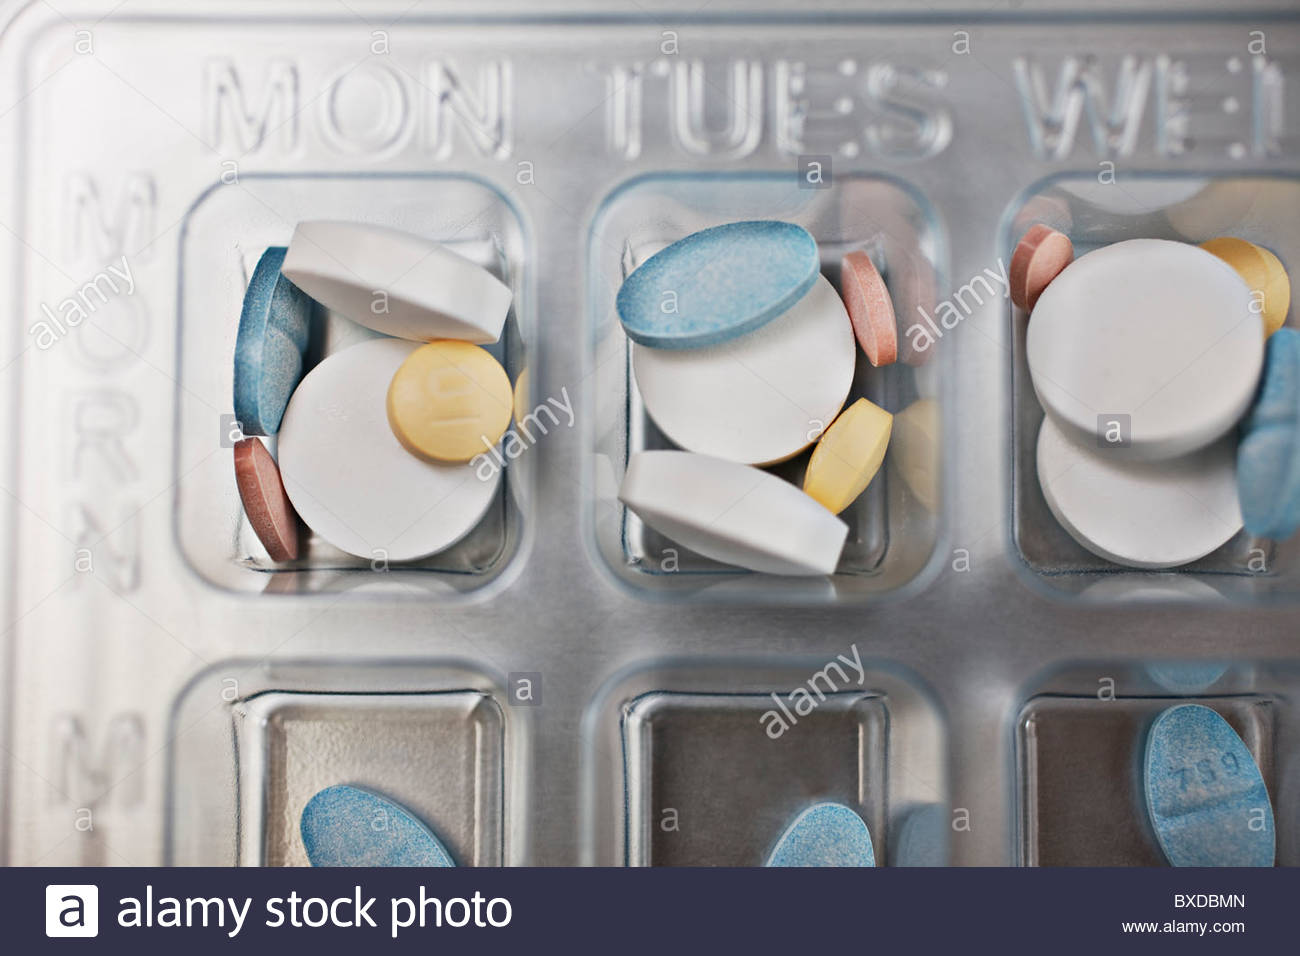 Close up of daily pill box - Stock Image